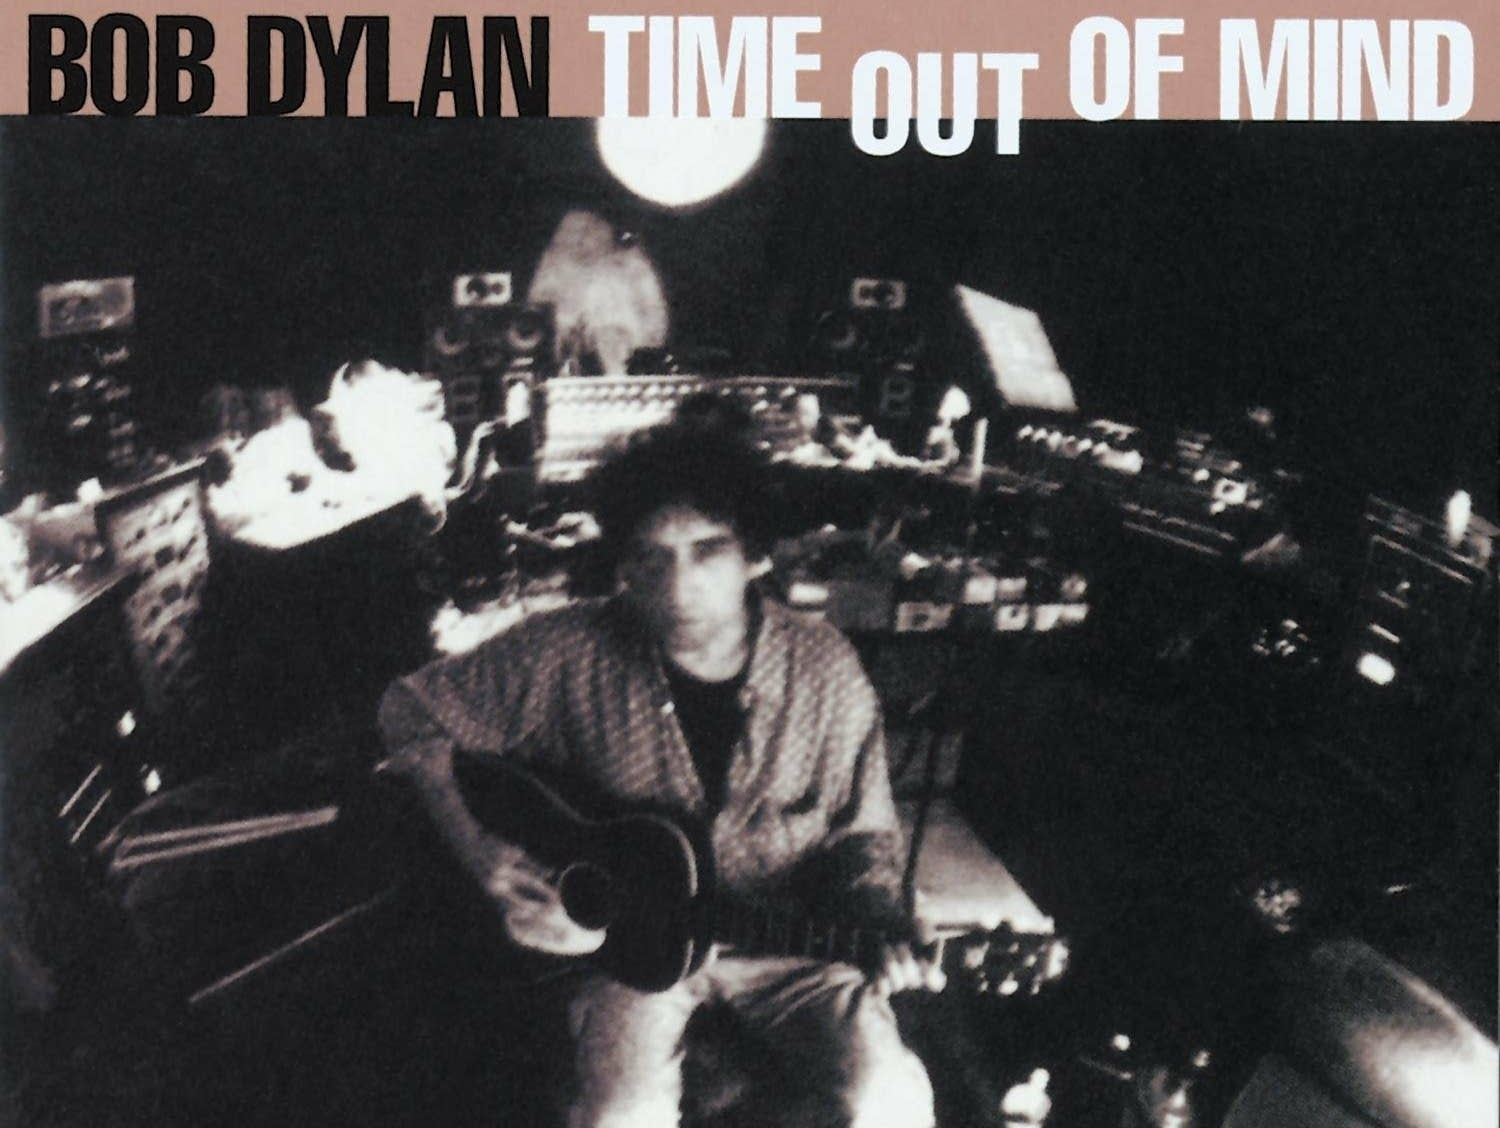 Bob Dylan 'Time Out of Mind' album cover.